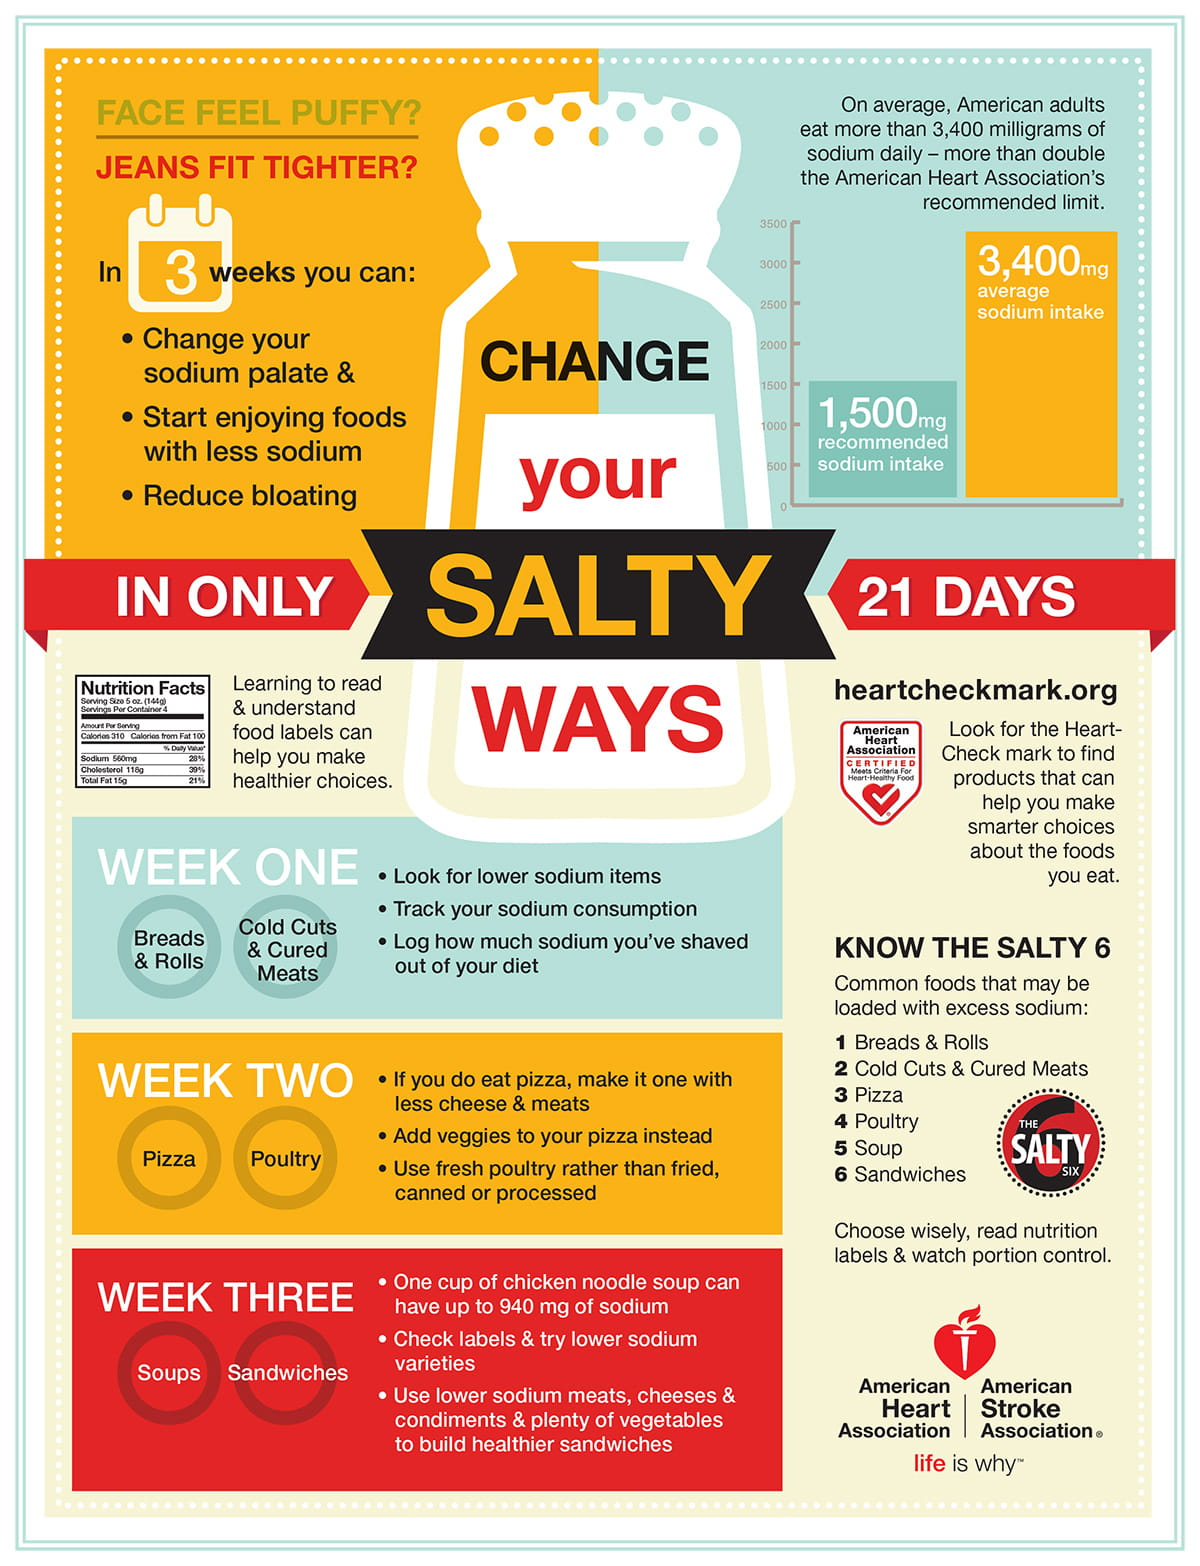 Sodium Swap - Change your salty ways in 21 days infographic